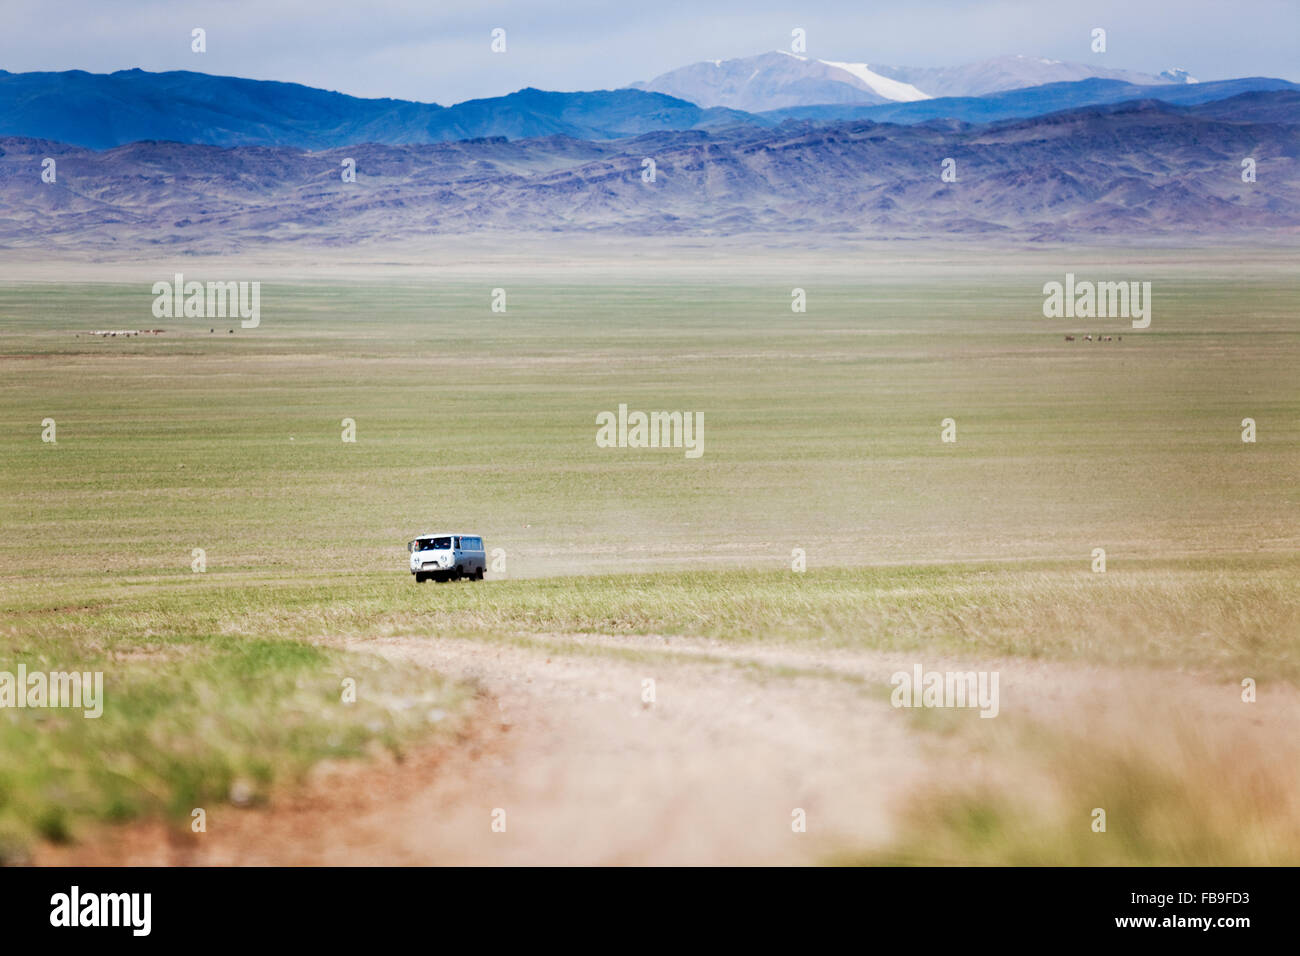 A Russian 'bread loaf' van on the road in far-western Mongolia. - Stock Image